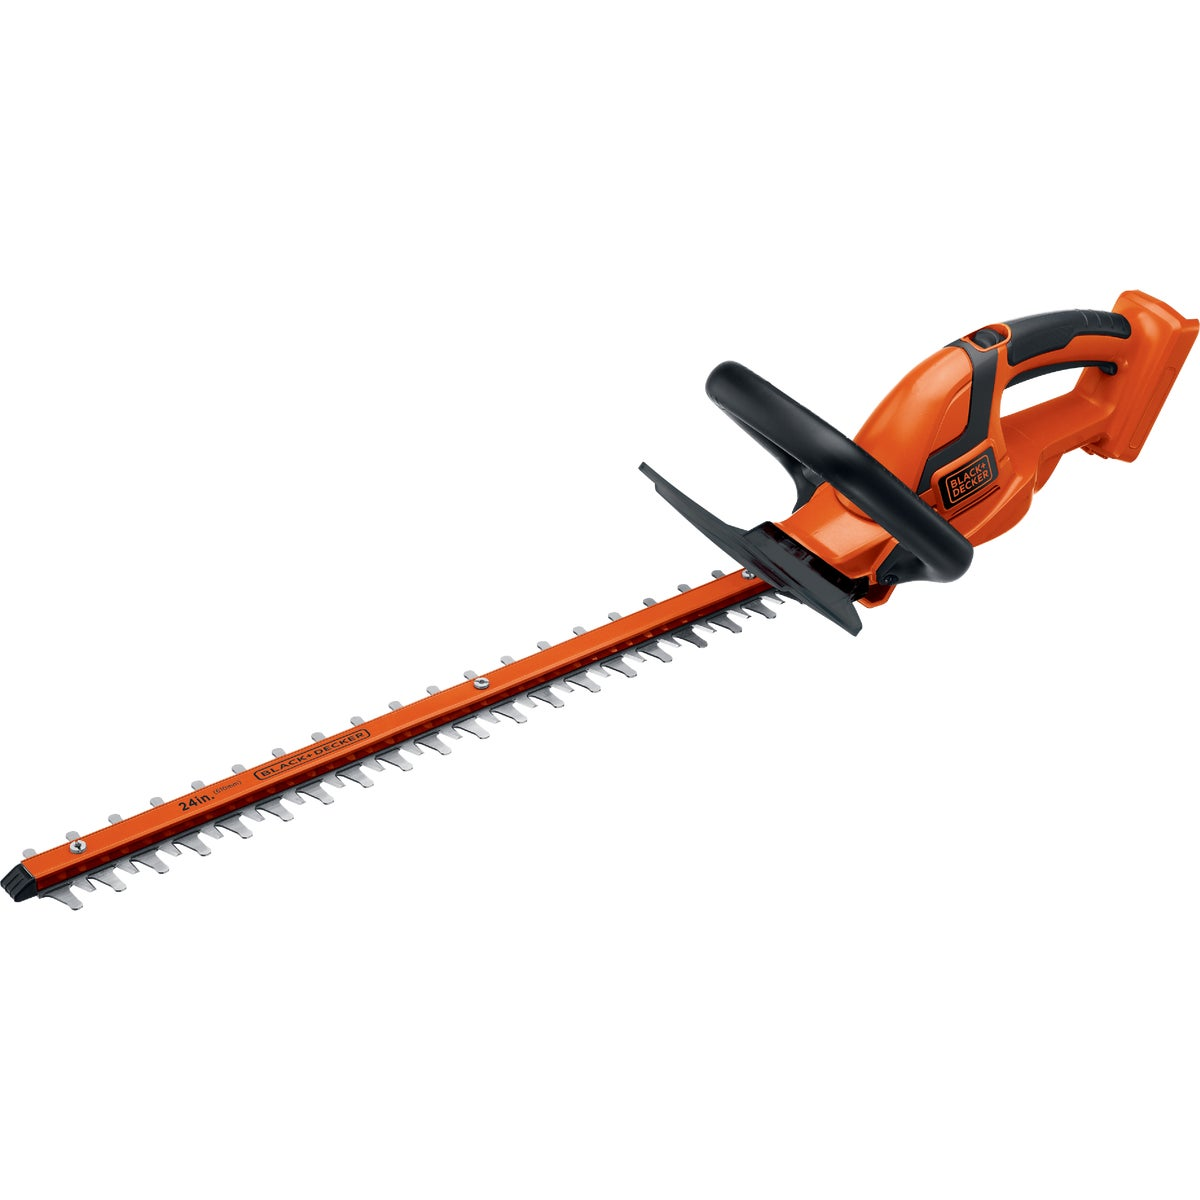 Black & Decker 40V MAX 24 In. Cordless Hedge Trimmer, LHT2436